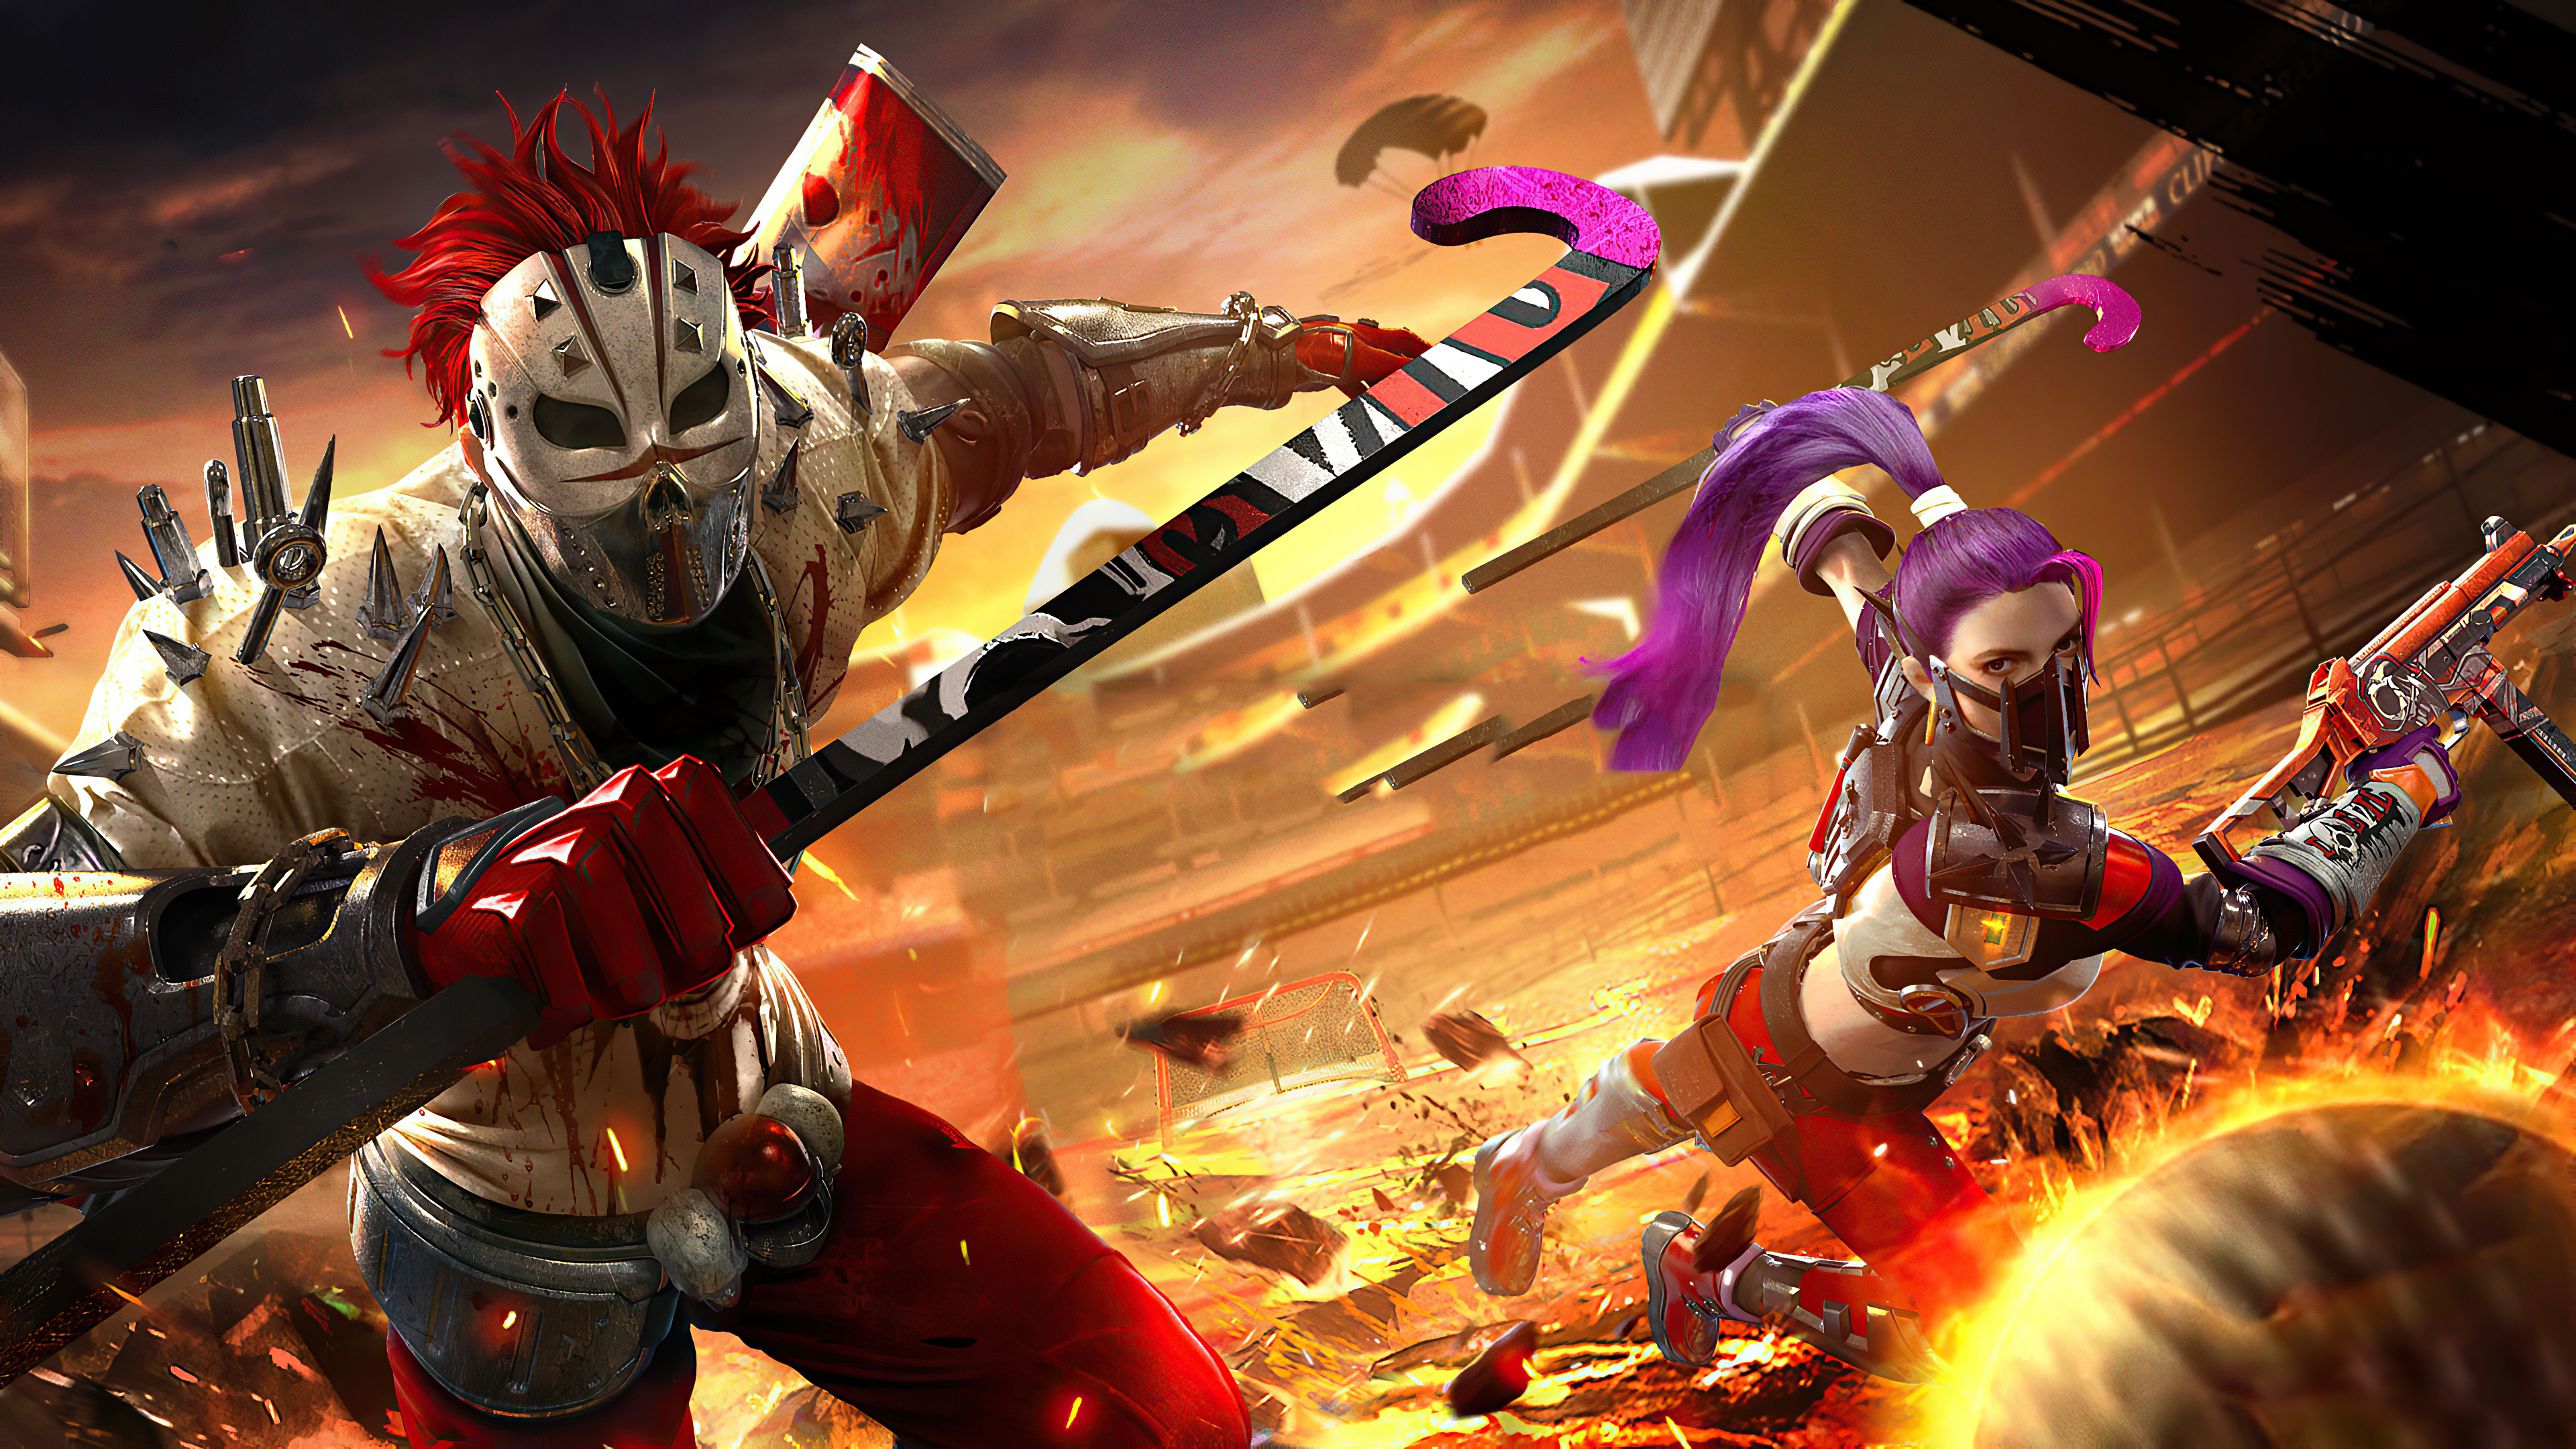 Garena Free Fire 2020 Hd Games 4k Wallpapers Images Backgrounds Photos And Pictures